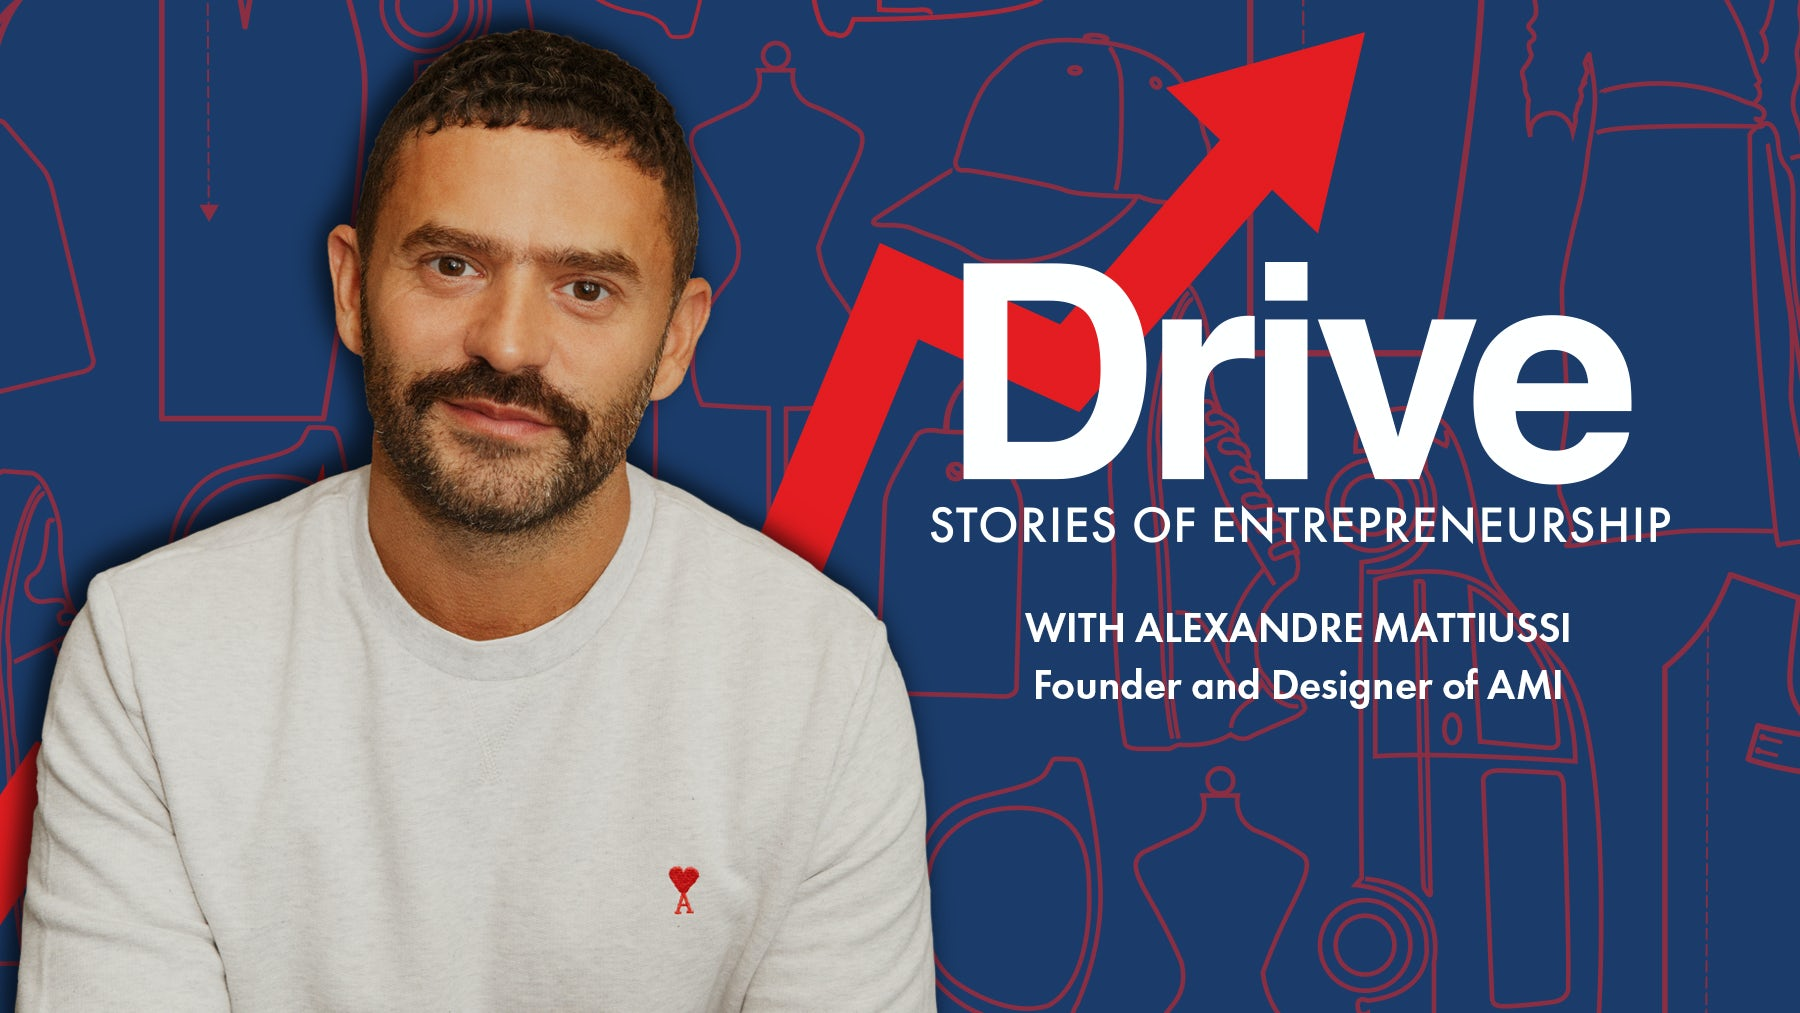 Drive Episode 4: The Making of AMI with Alexandre Mattiussi